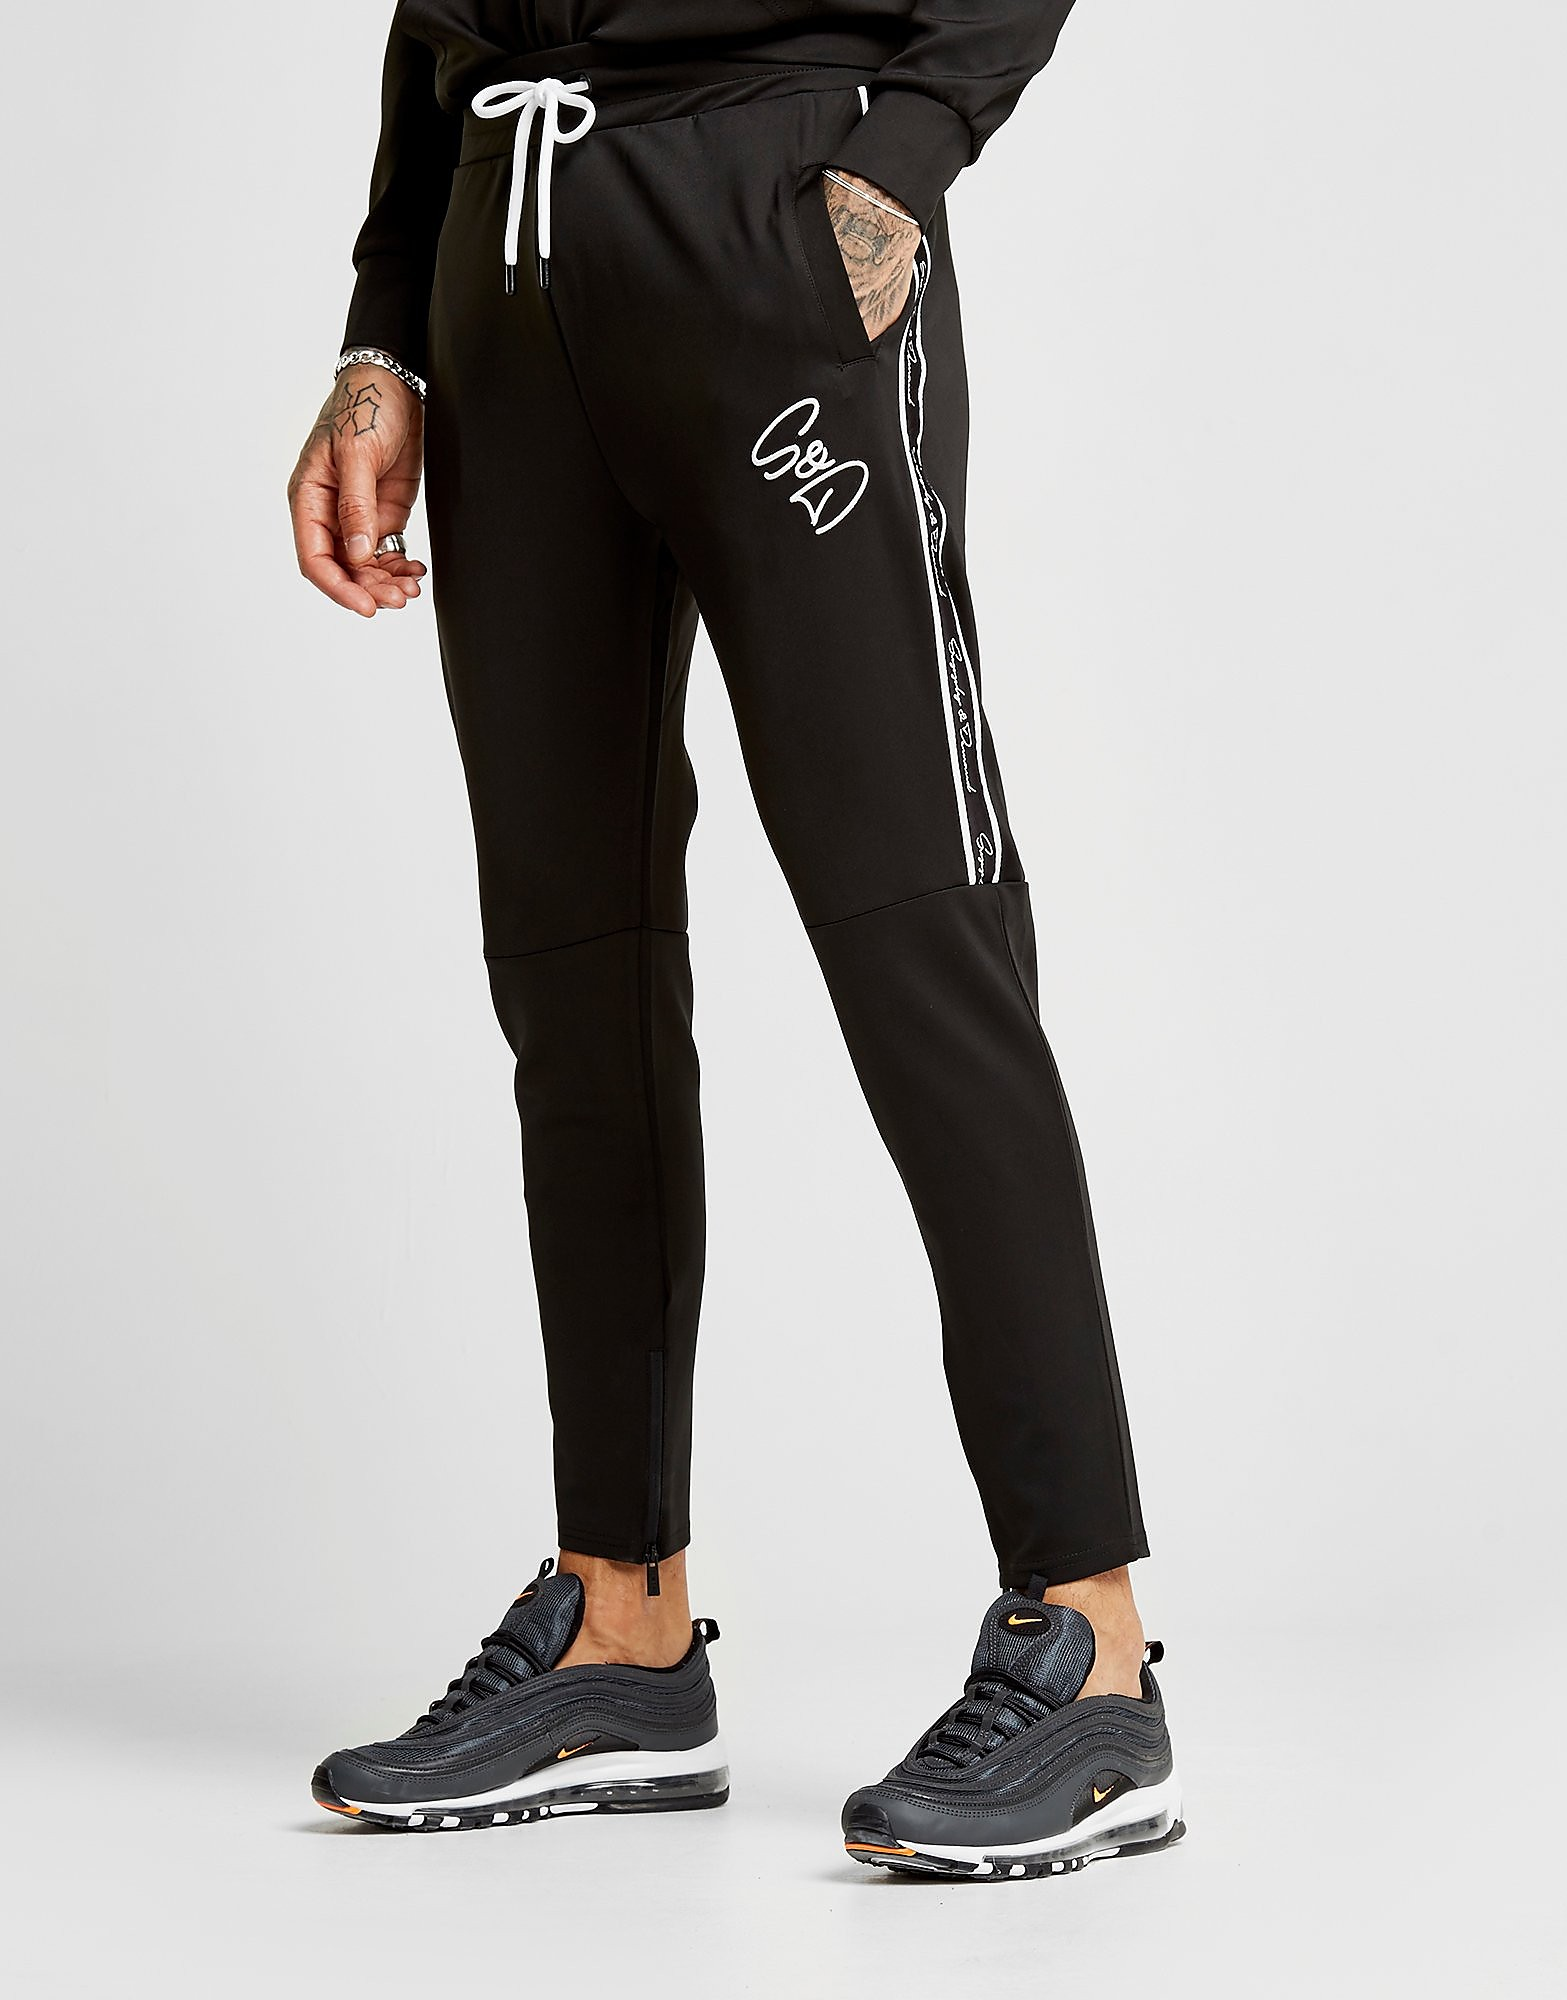 Supply & Demand Script Tape Joggers - Only at JD, Black